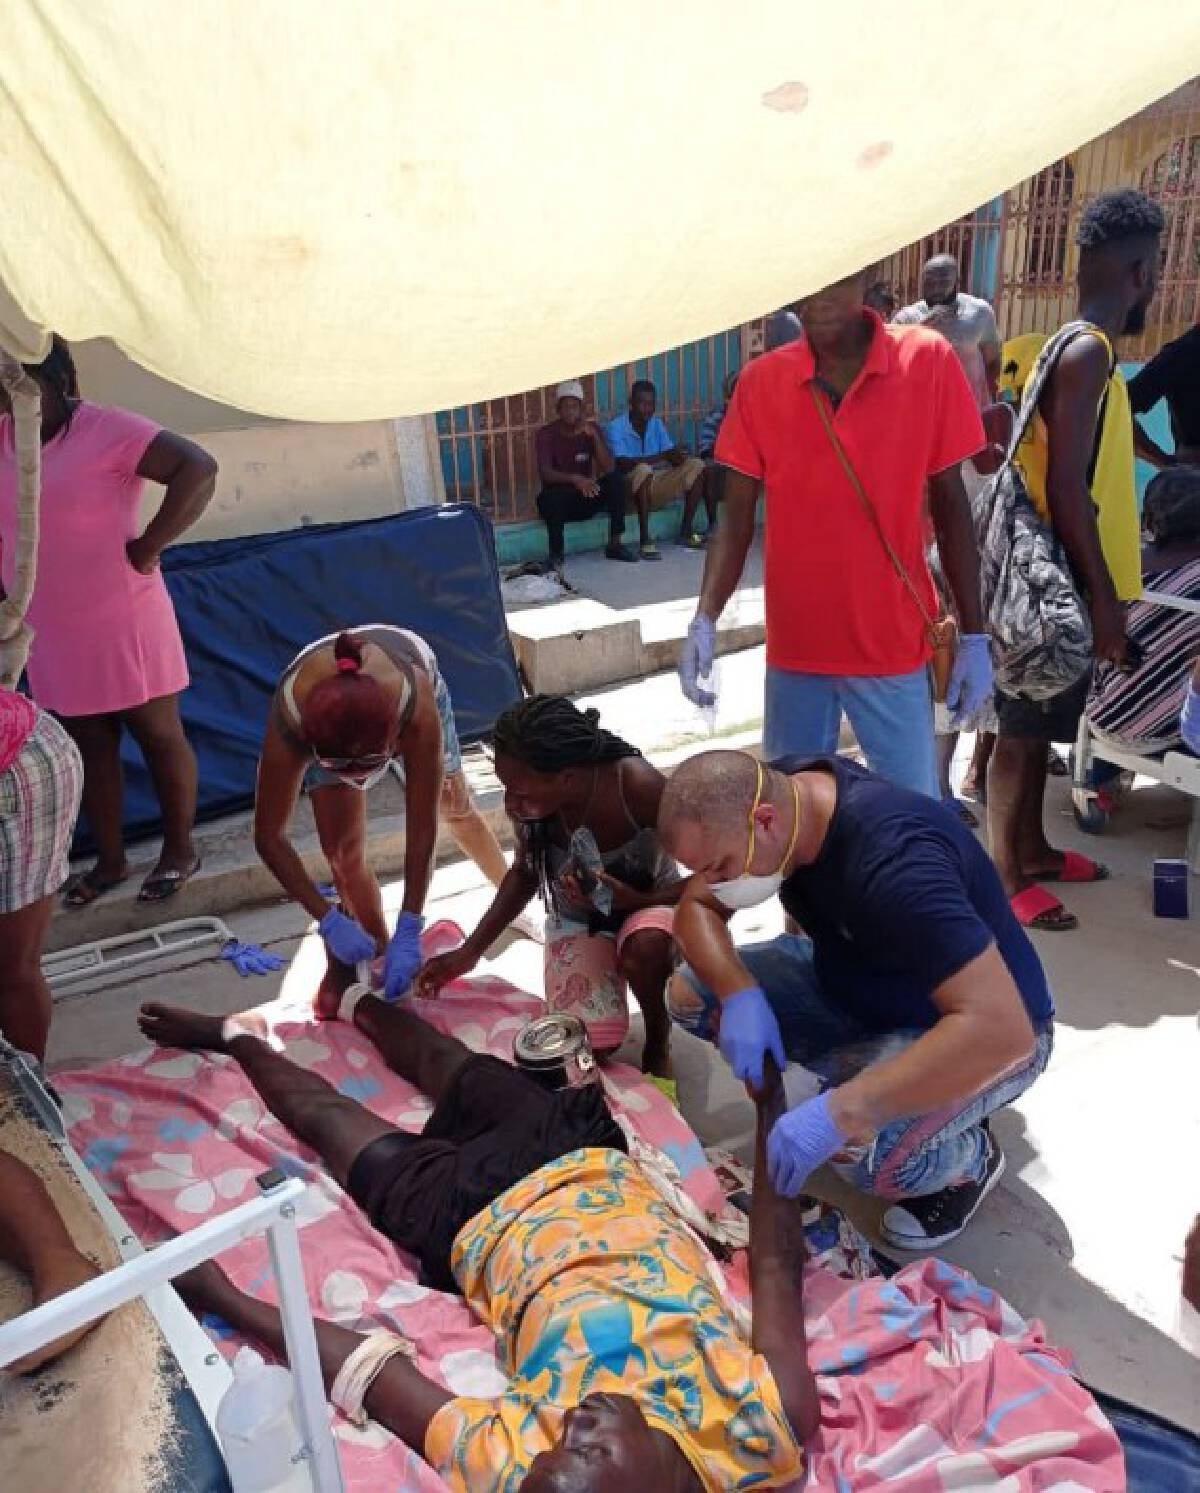 Photo taken with a mobile device shows members of the Cuban Medical Brigade helping an injured person after an earthquake in Jeremie, Haiti, Aug. 14, 2021.